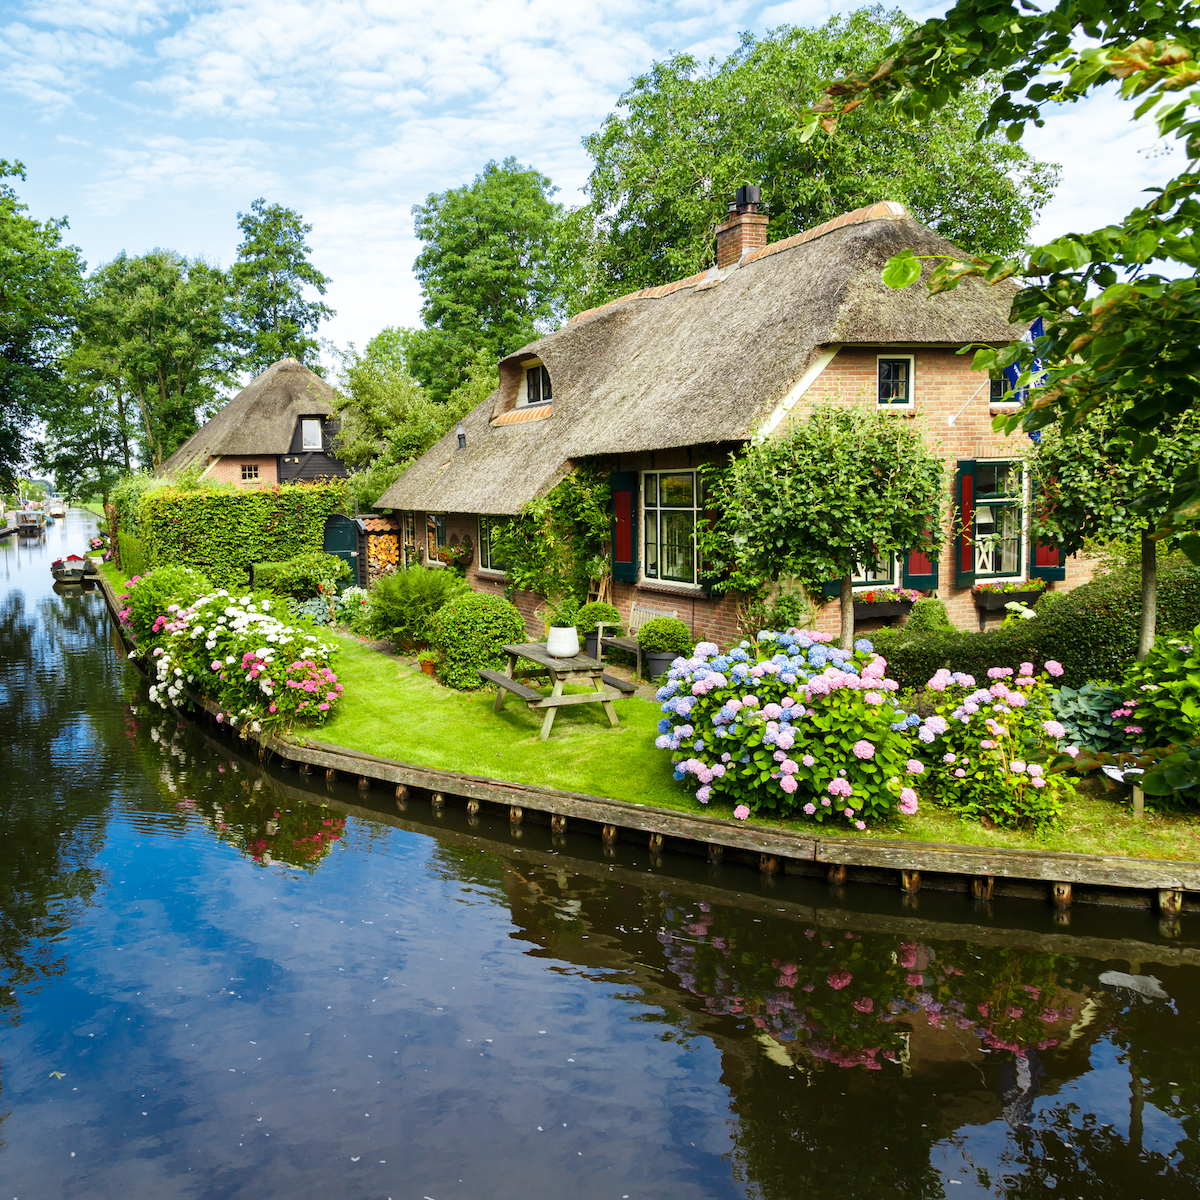 A canal in Giethoorn, Netherlands